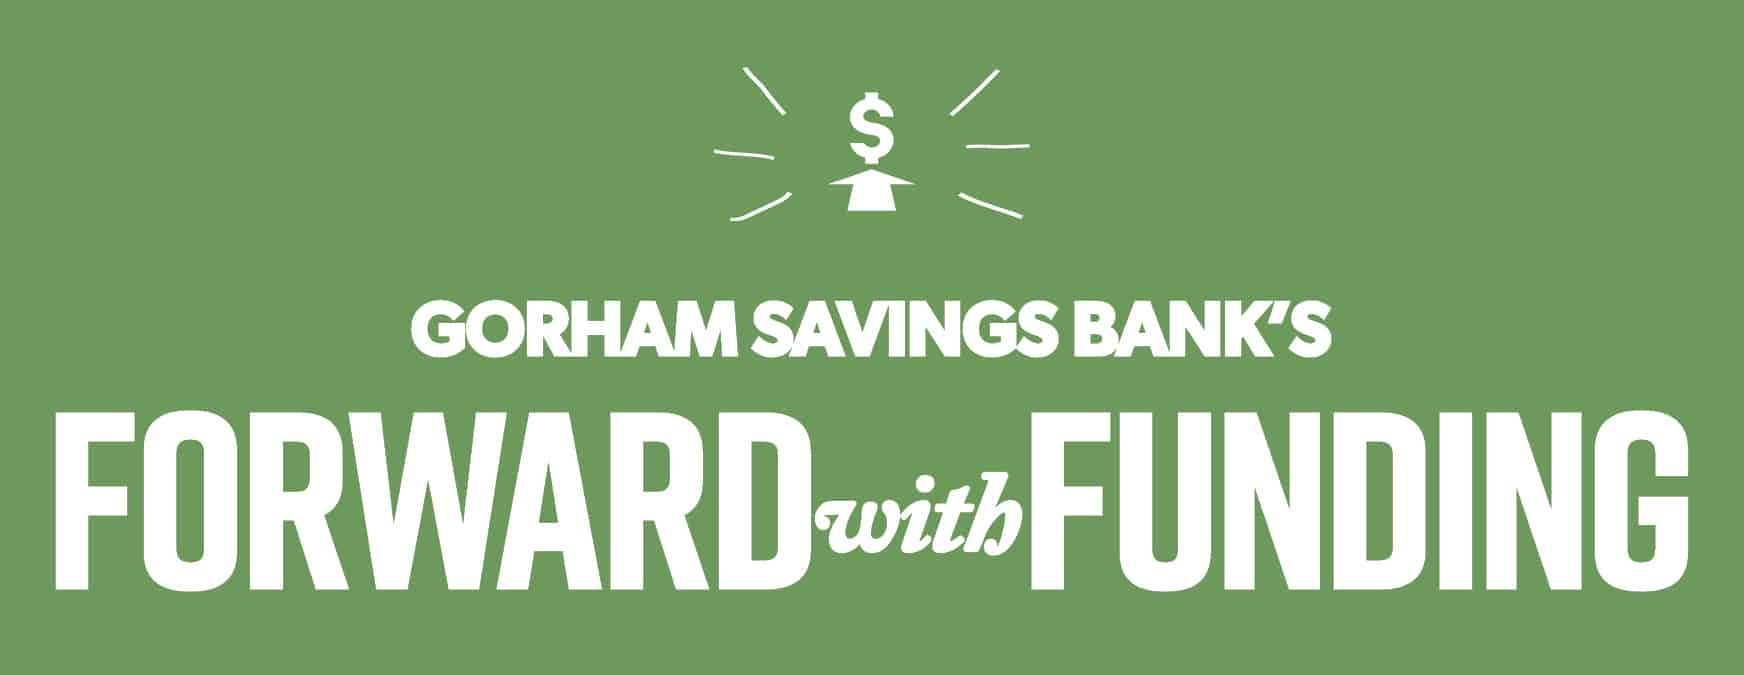 Gorham Savings Bank's Forward with Funding